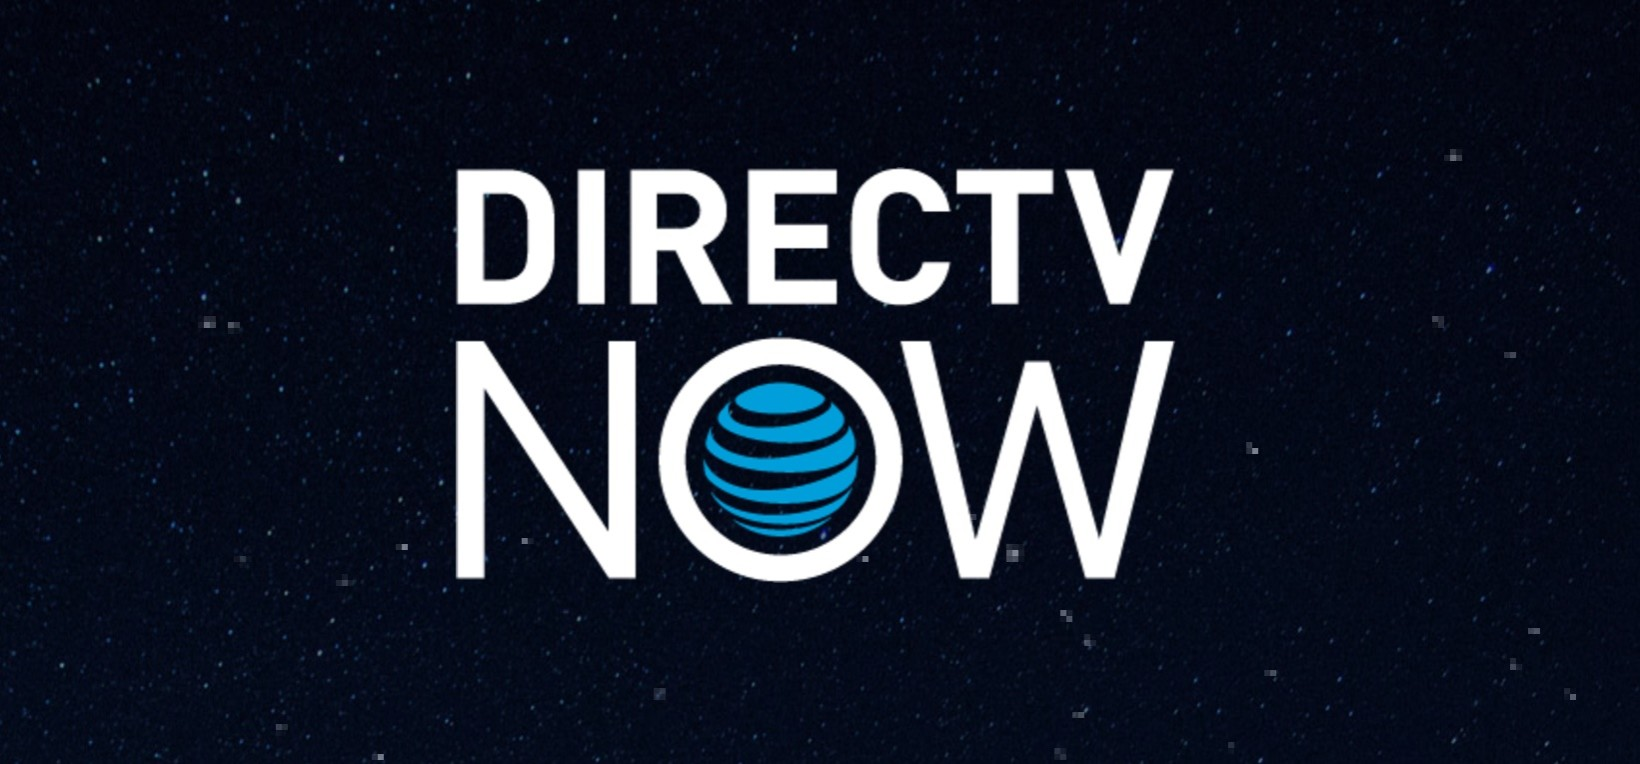 at t launches directv now service with 120 channels on nov 30. Black Bedroom Furniture Sets. Home Design Ideas